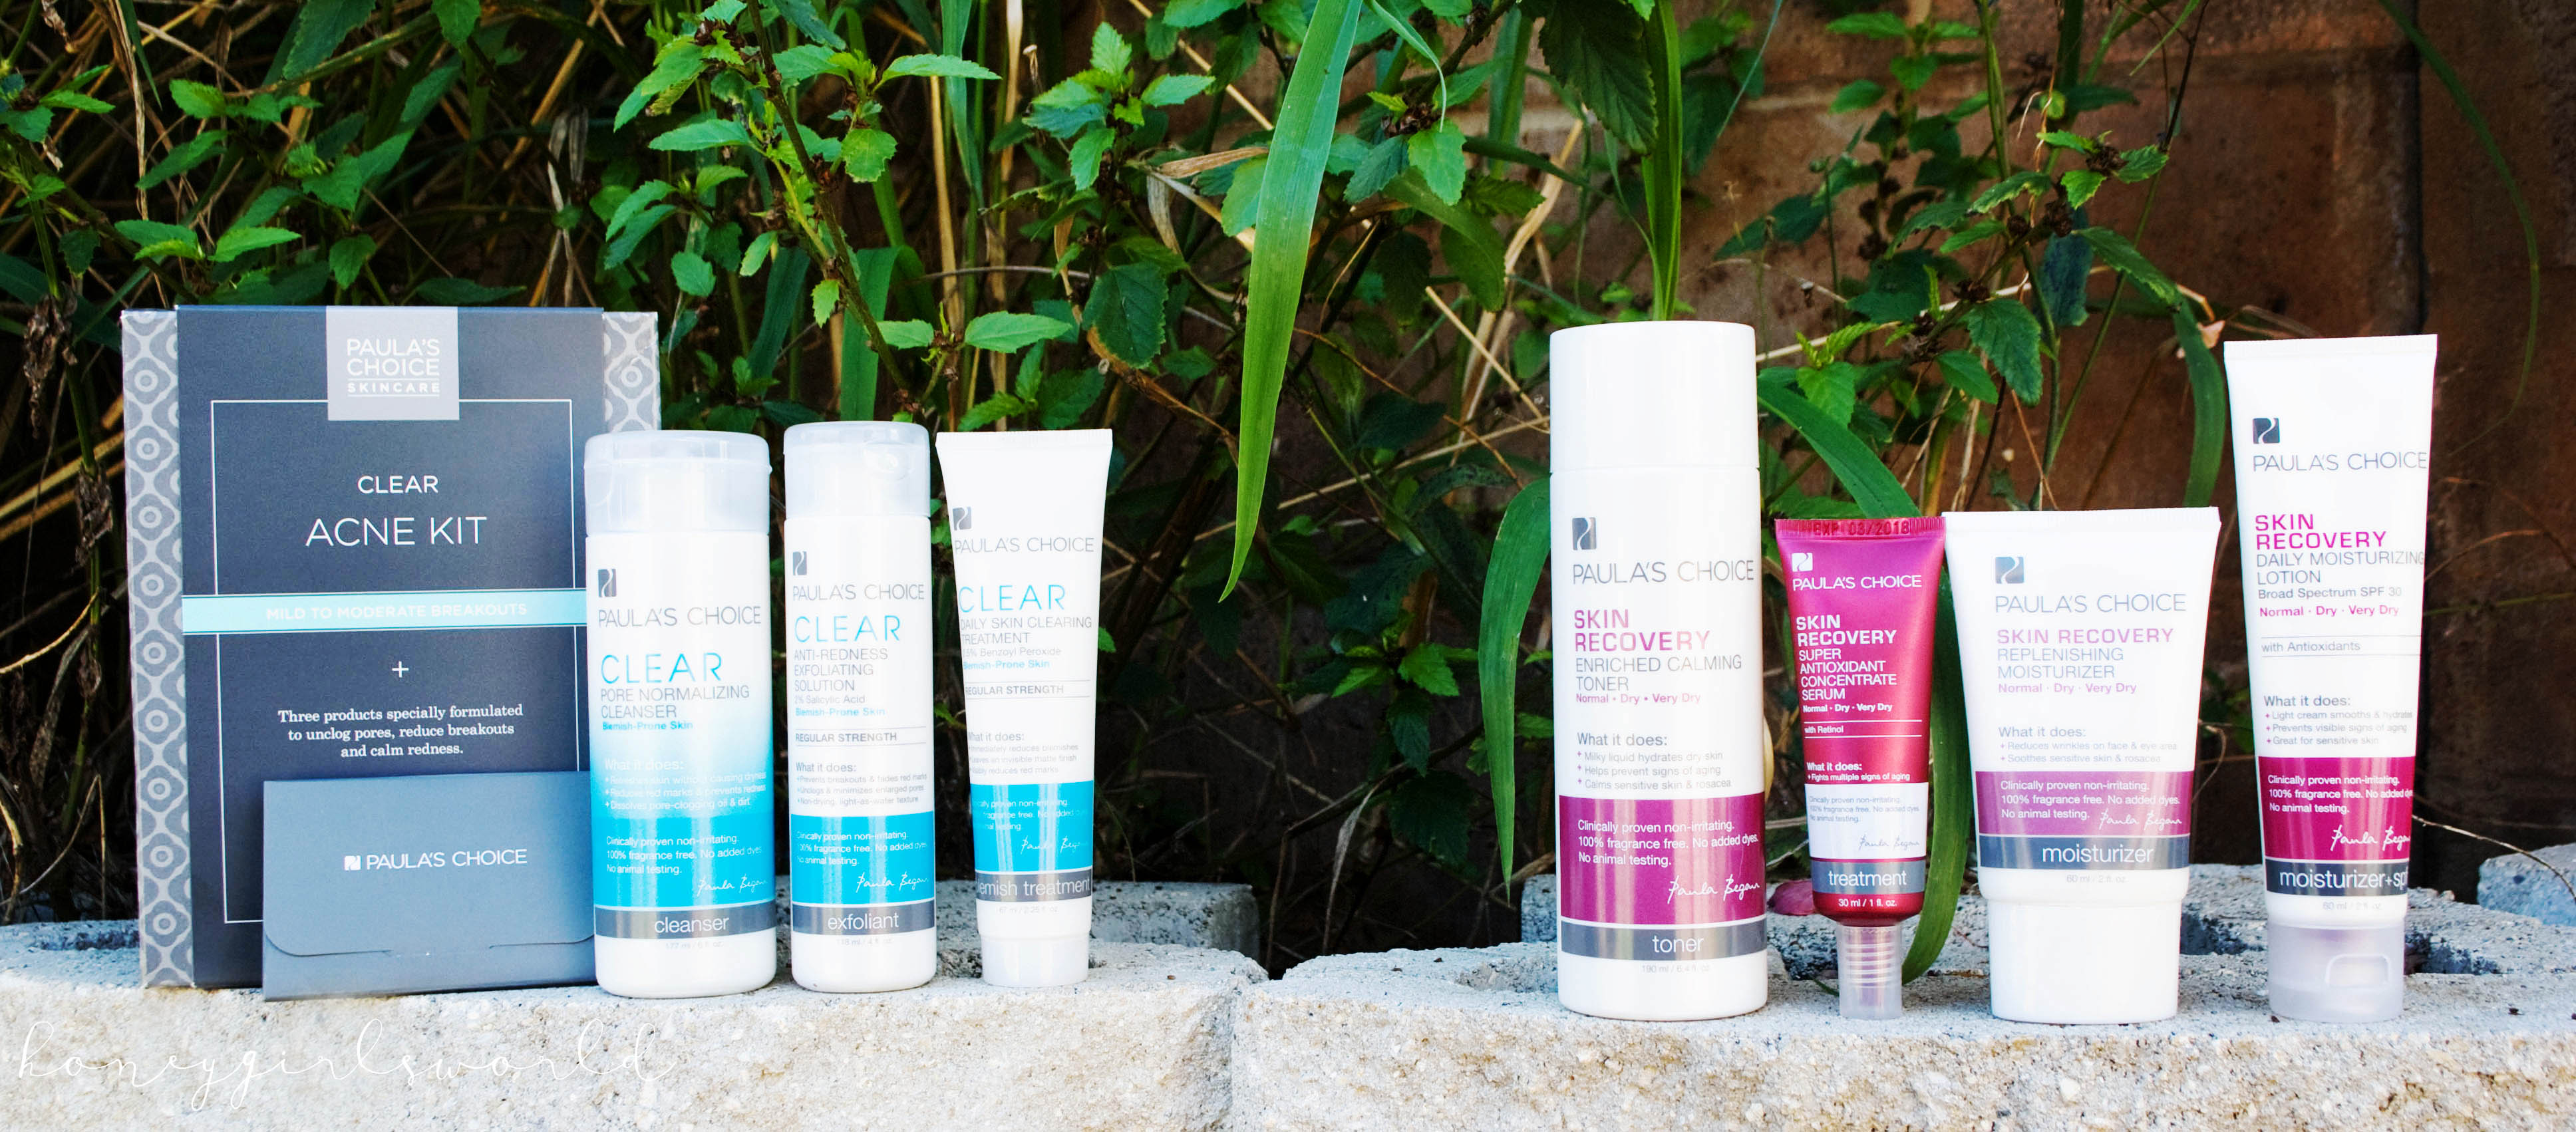 Customizable Skincare With Paula's Choice